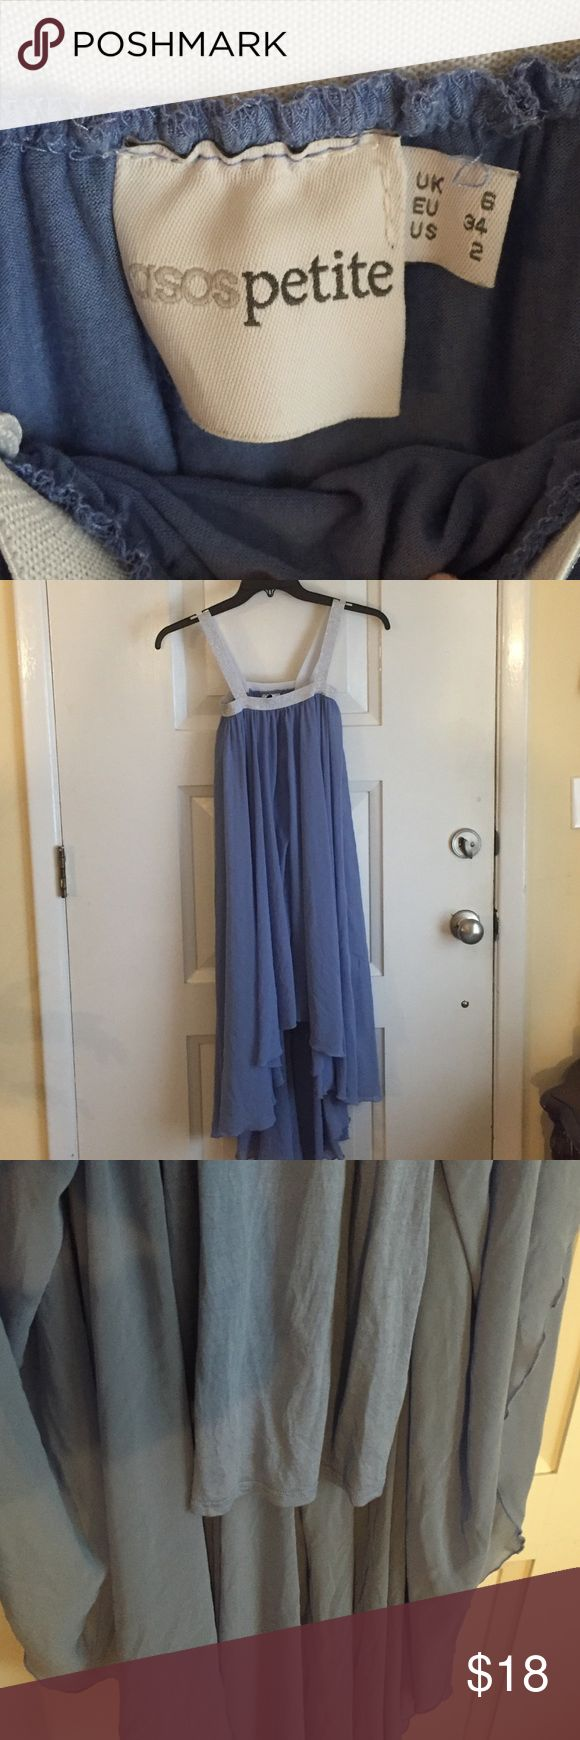 🔹Asos petite dress size 2🔹 Adorable blue and silver dress. It's high in the front and low in the back. The straps are silver and made from elastic. The outer material is sheer and there is a cotton layer under it that goes to your mid thigh. Very cute! Great shape! Hand wash and let air dry ASOS Petite Dresses High Low